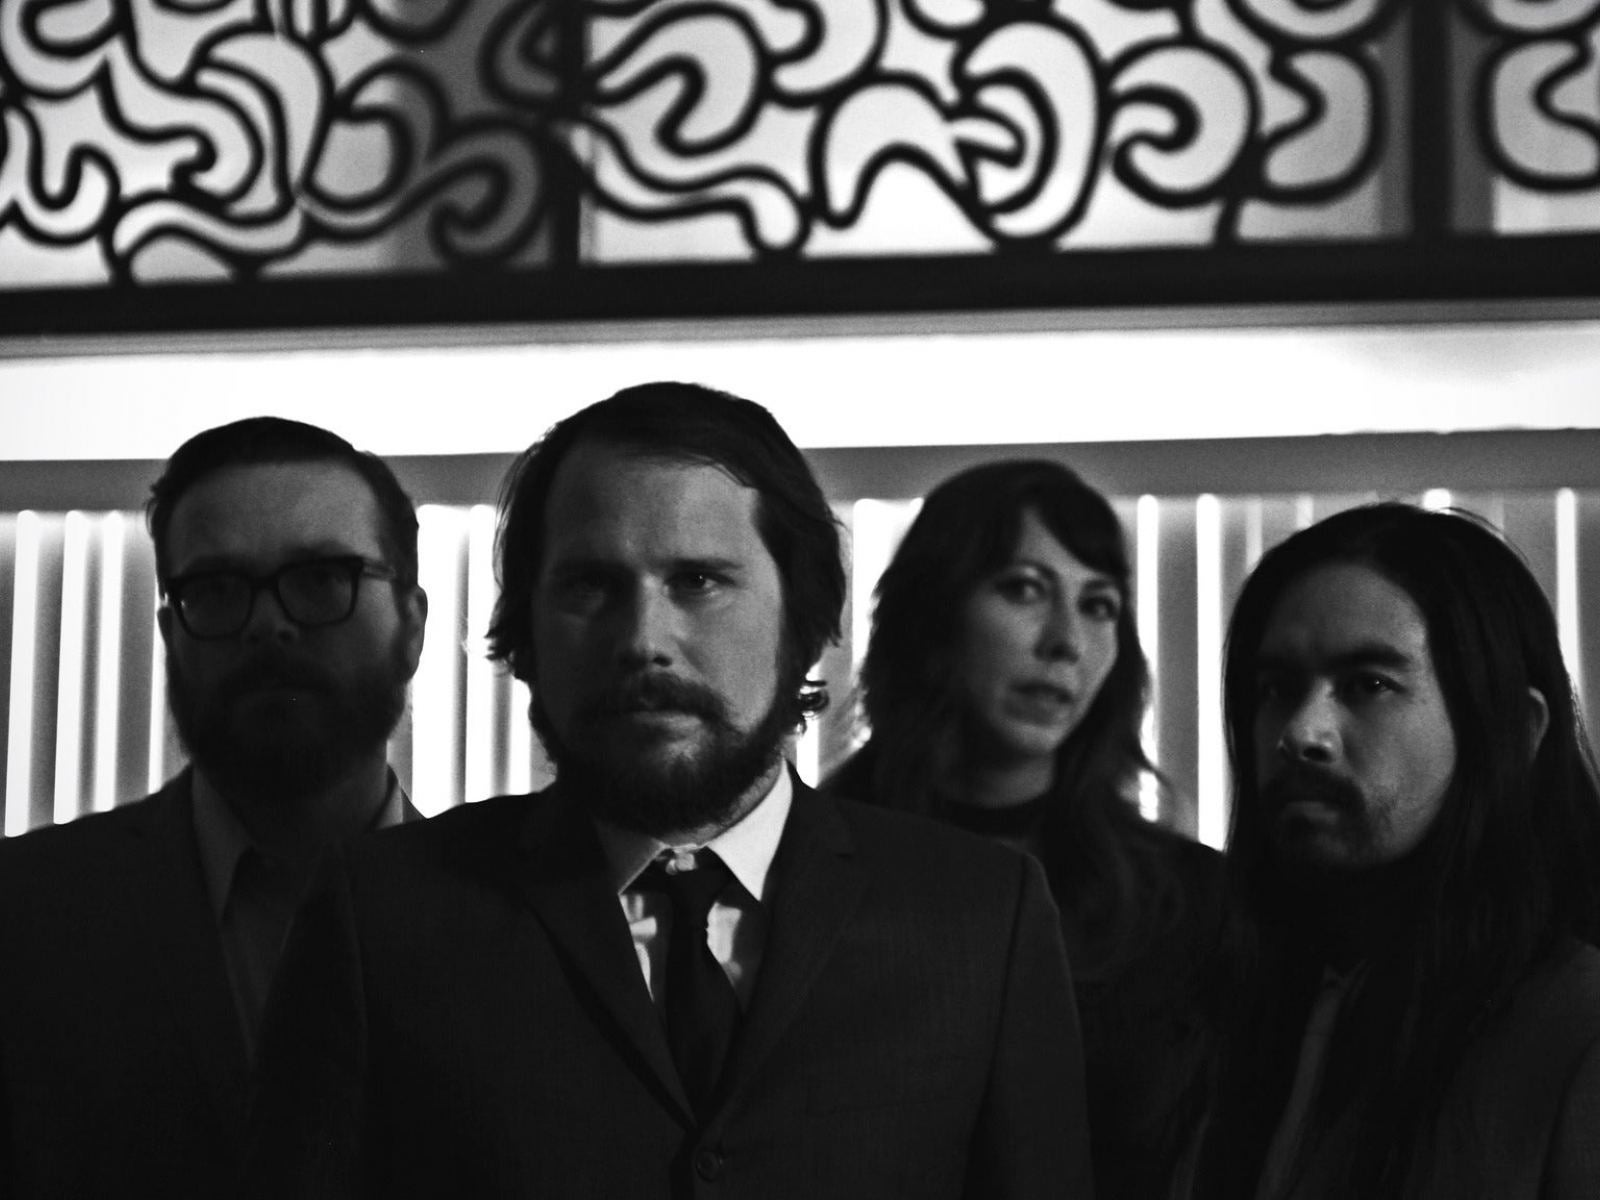 Main image for event titled Silversun Pickups